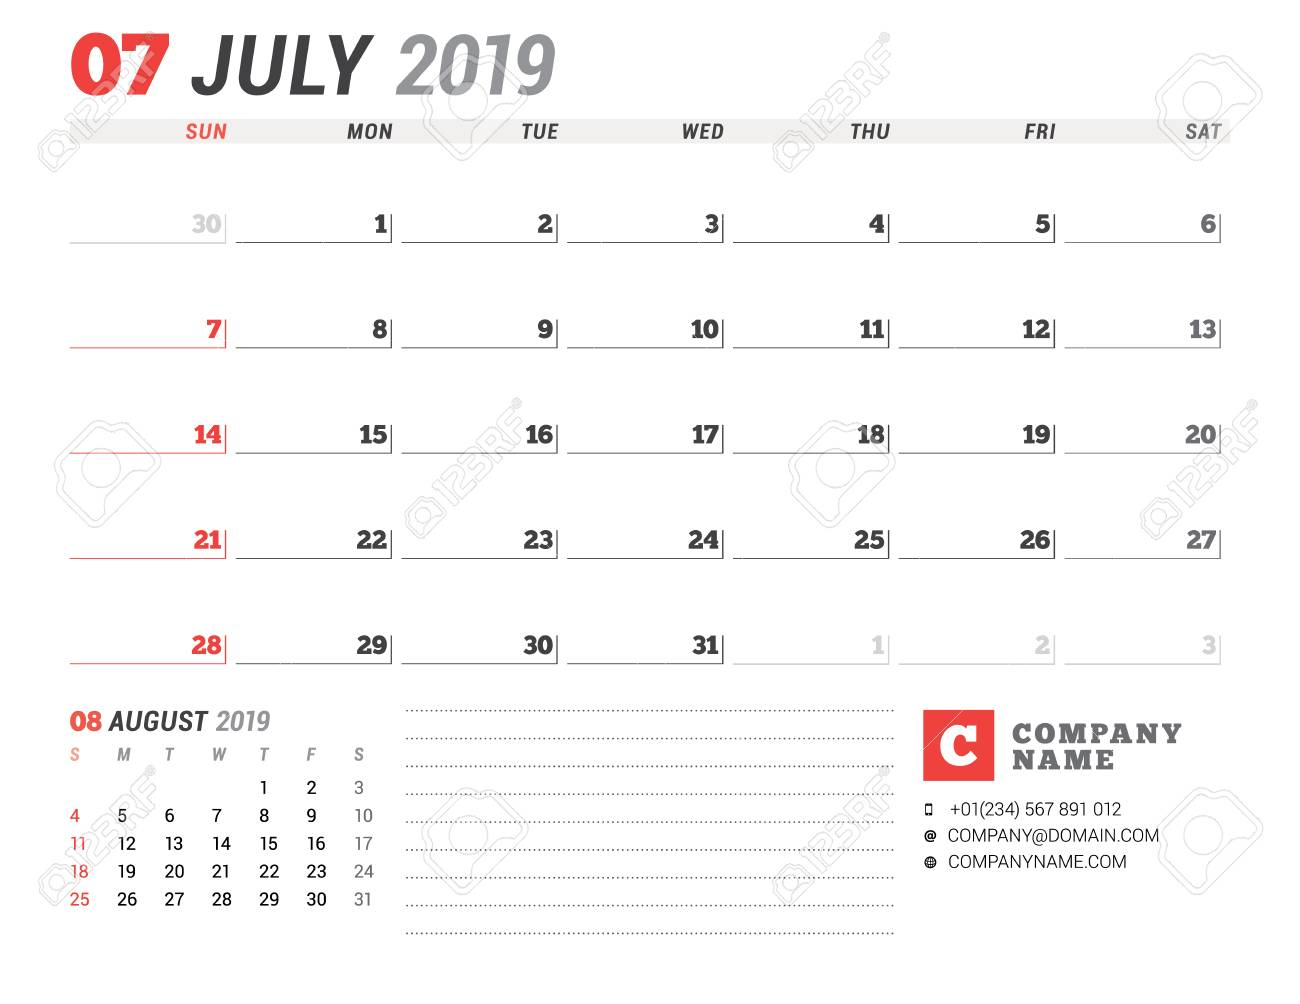 Calendar template for july 2019 business planner stationery calendar template for july 2019 business planner stationery design week starts on sunday wajeb Images